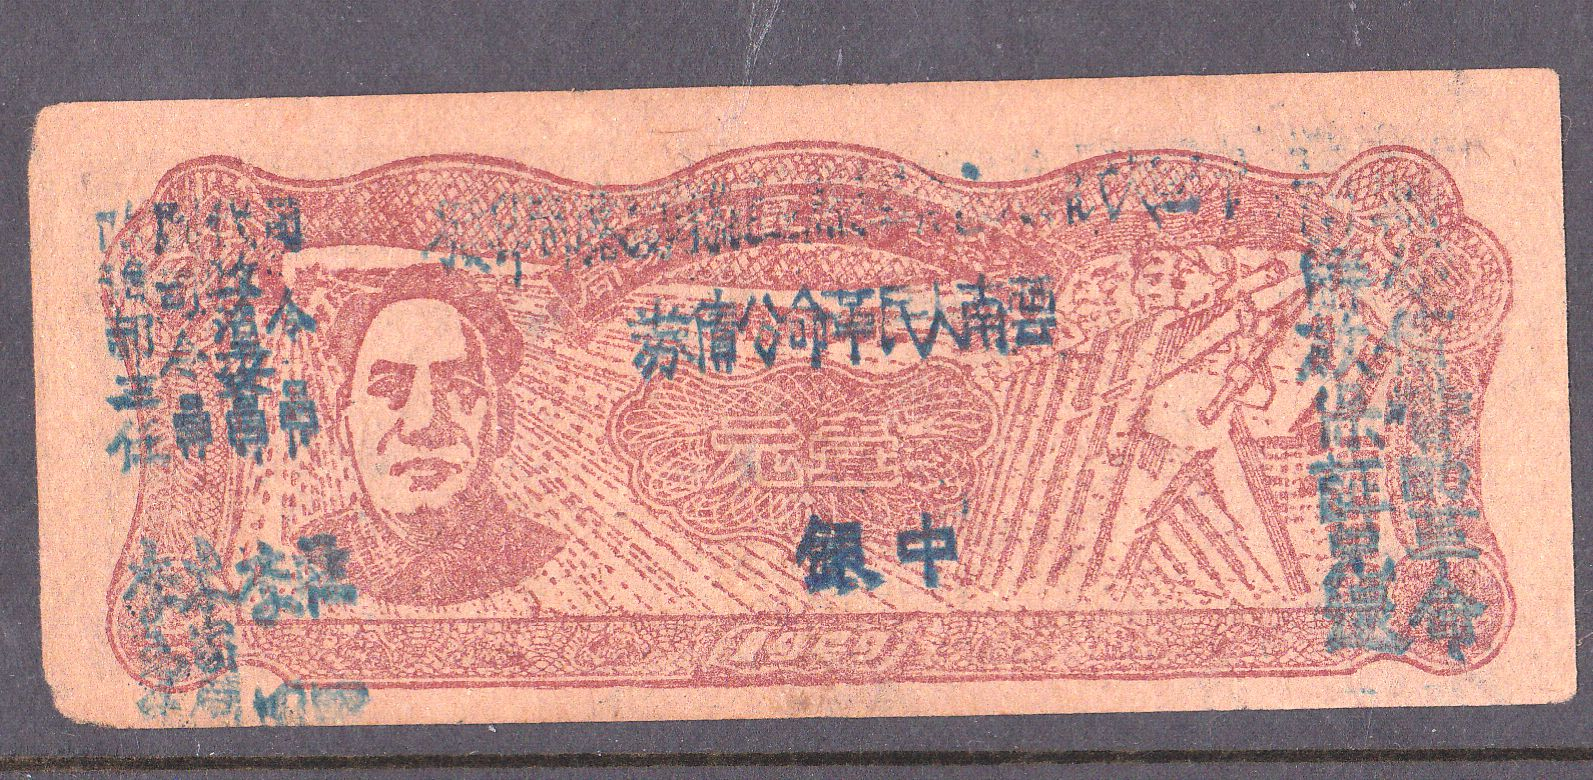 B4070, Bond of China Yunnan Peolple's Revolution Government, 1 Dollar, 1949